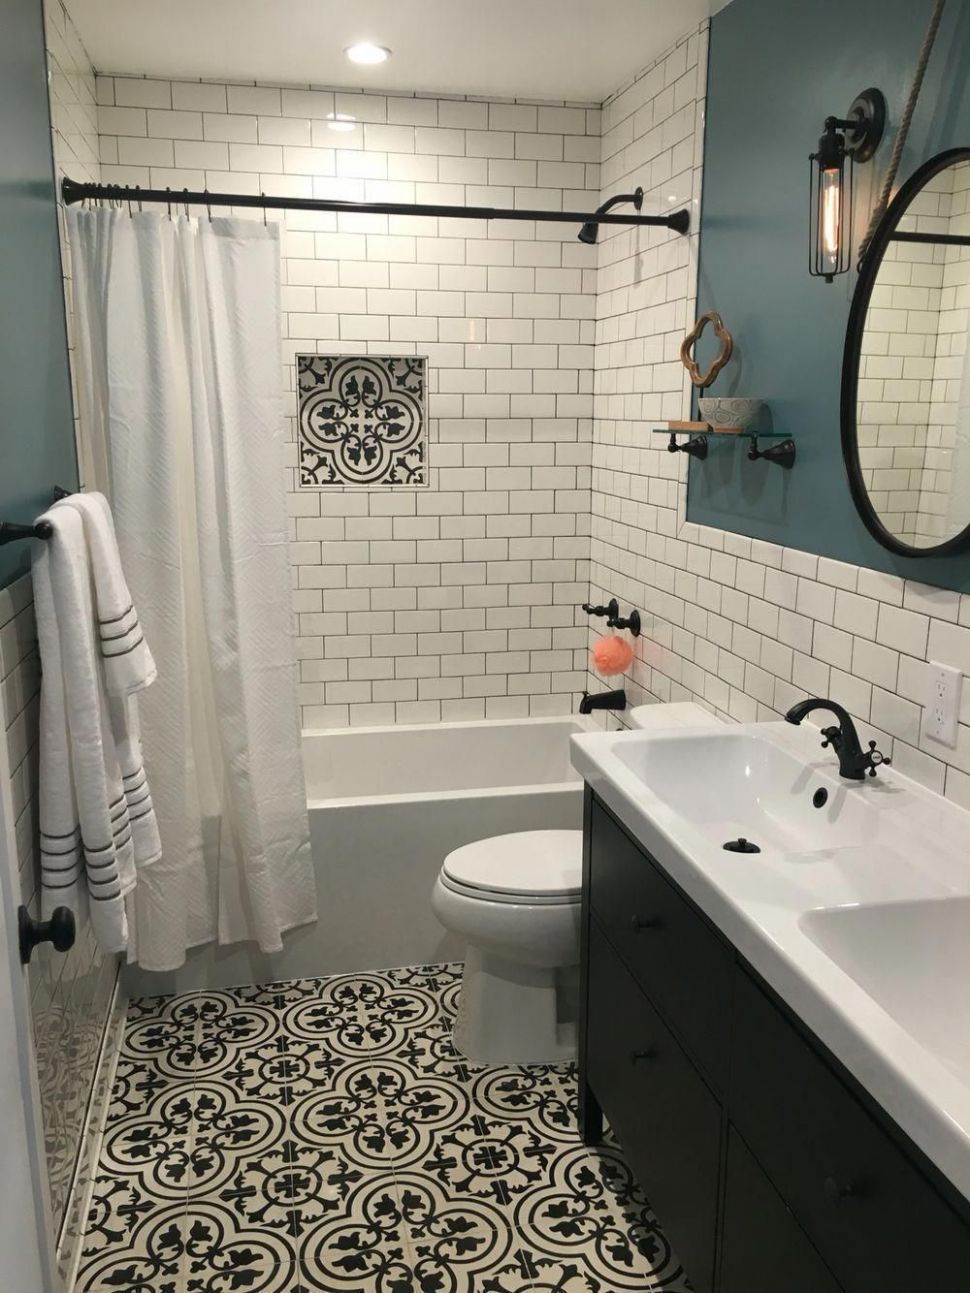 Most Popular Small Bathroom Remodel Ideas on a Budget in 10 This ..